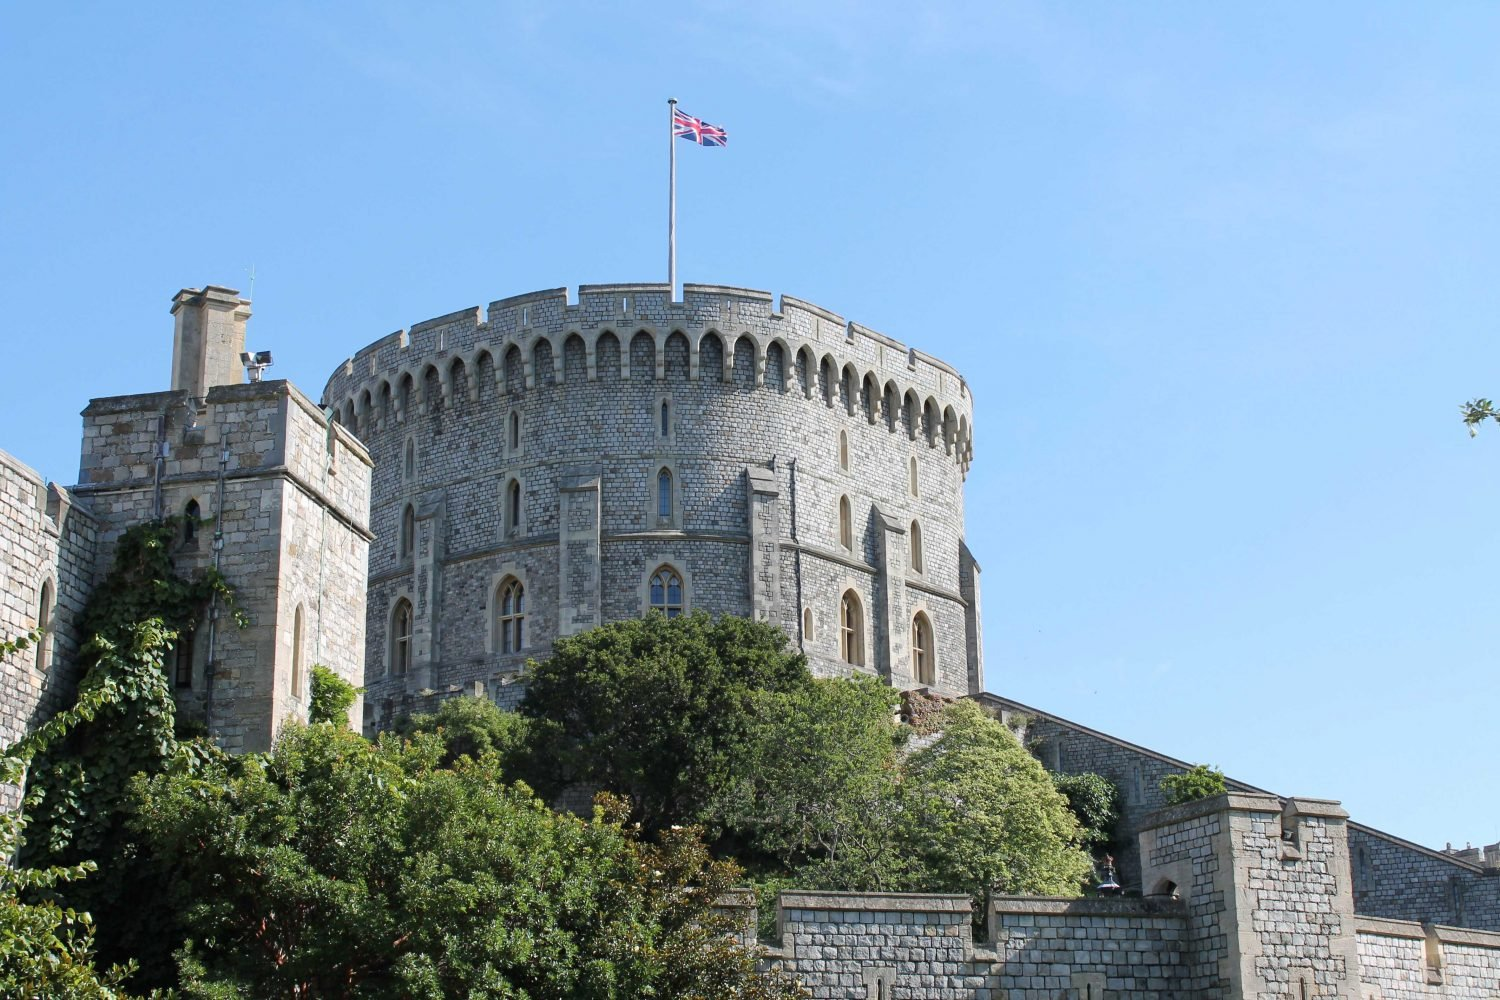 Windsor Castle Tickets - An exterior view of Windsor Castle